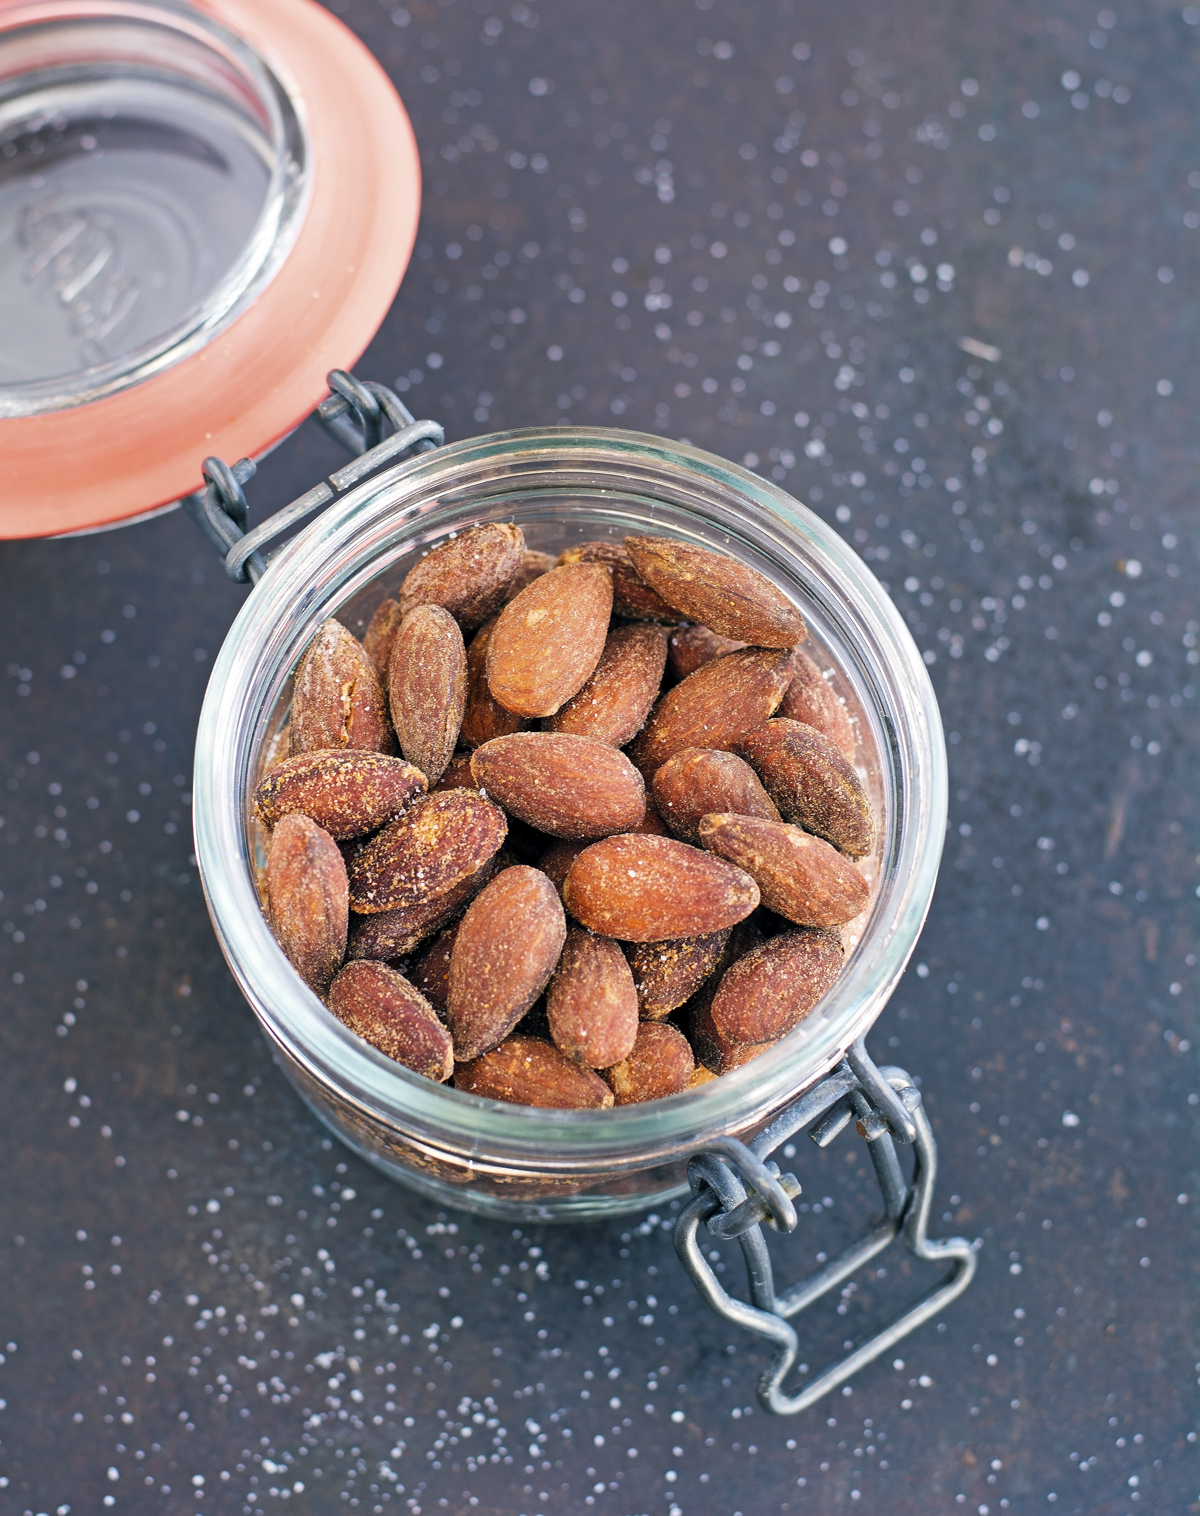 ... almonds can get boring, so what about spicing things up with smoked